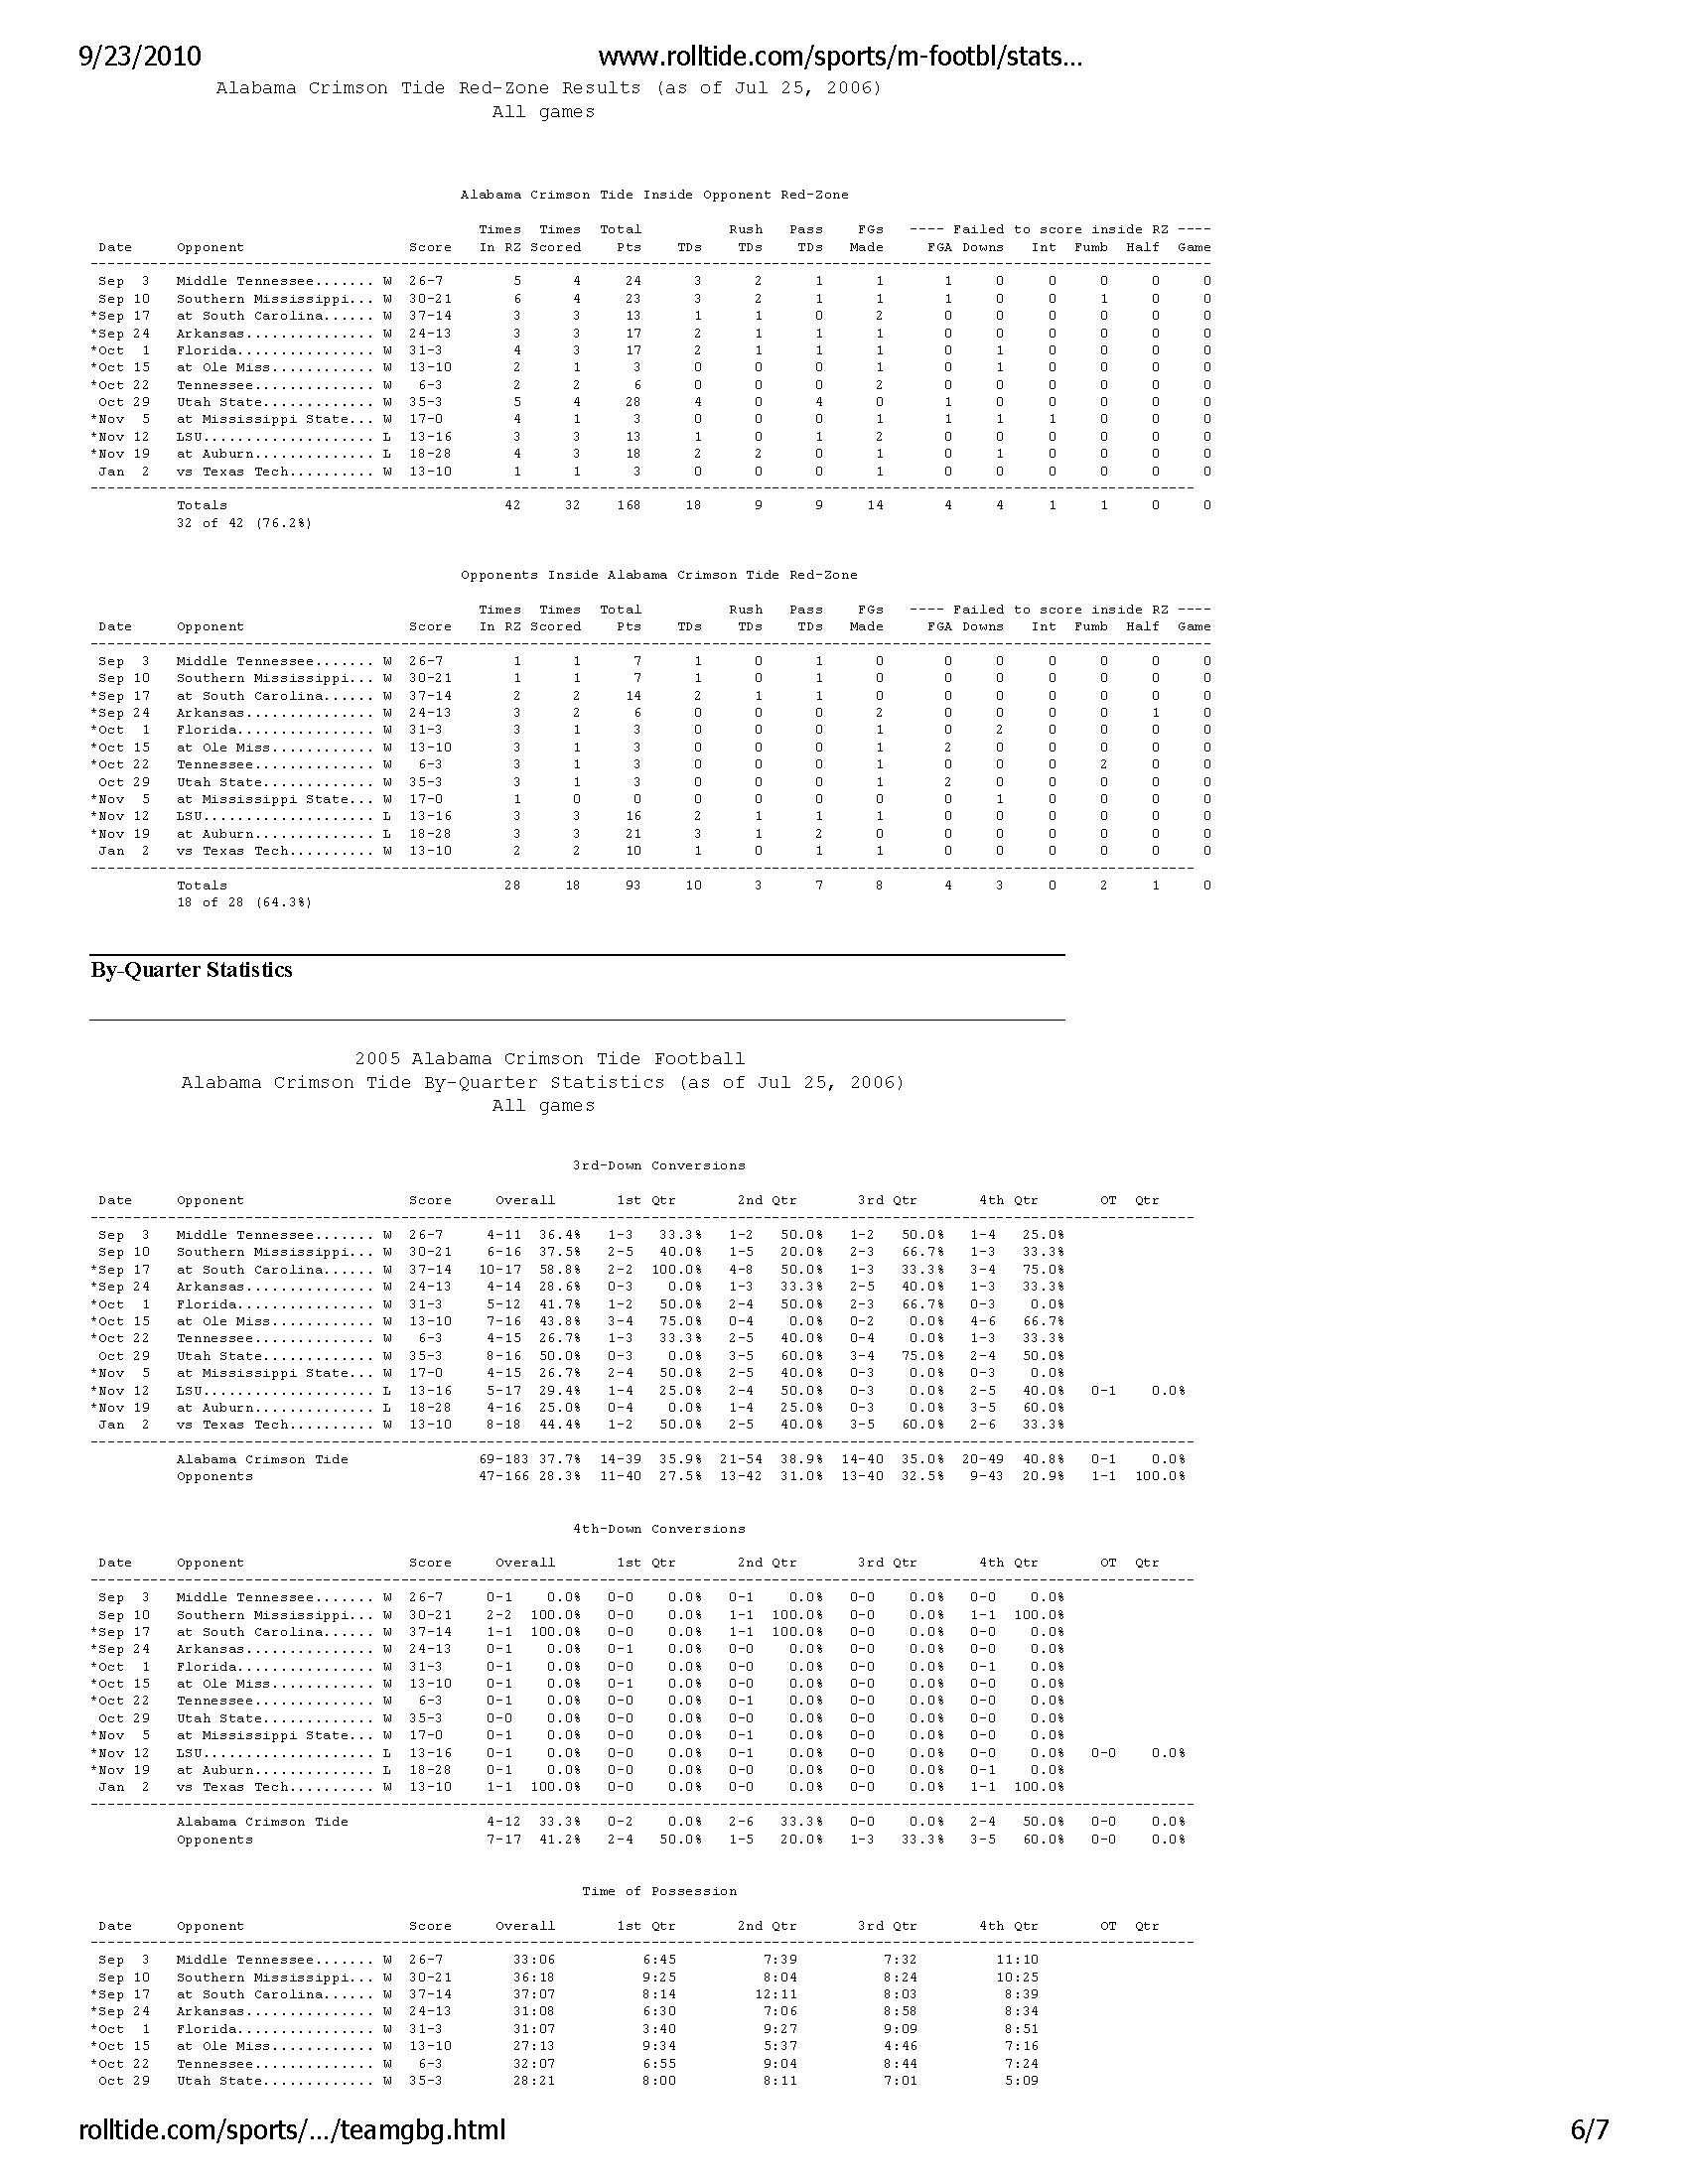 Alabama Crimson Tide -- Game by Game Statistics -- Archive 2005-06_Page_6